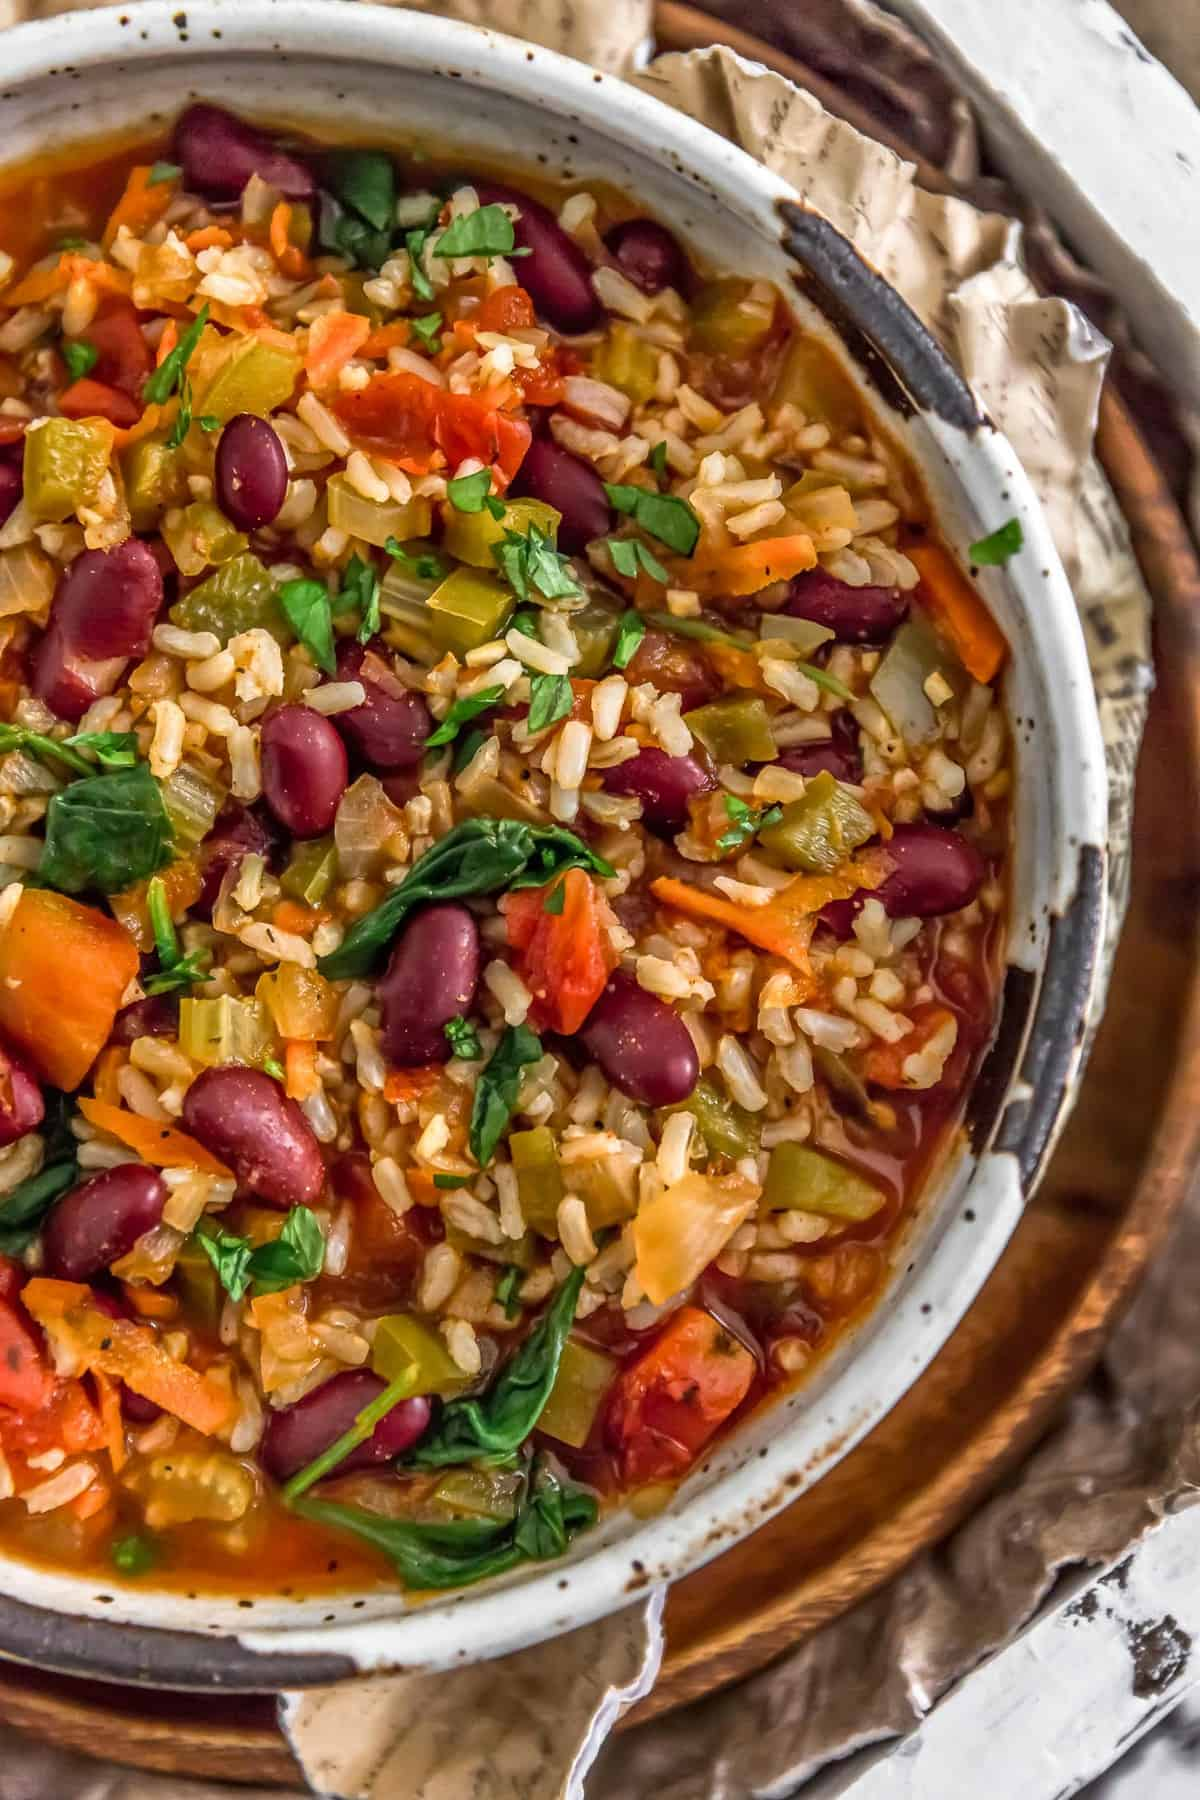 Bowl of Healthy Vegan Jambalaya